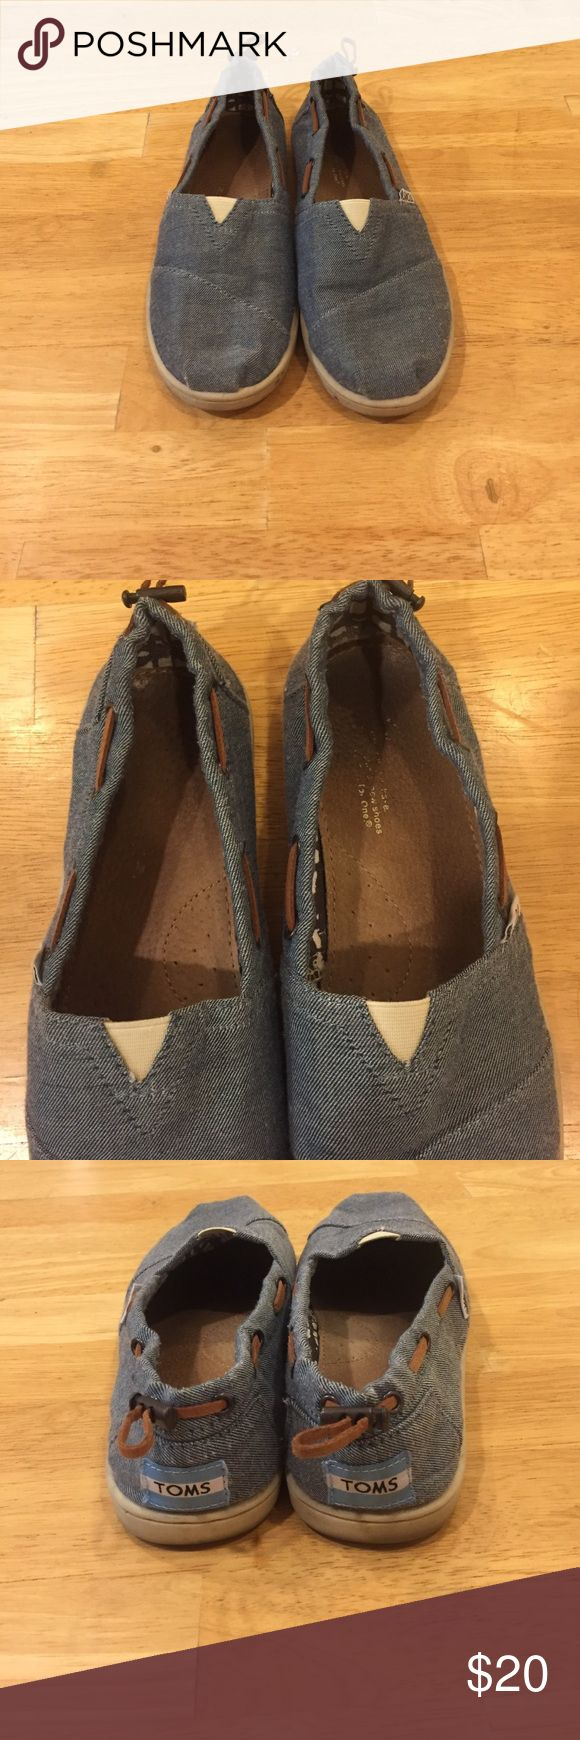 Jean Blue Toms Size youth 5.5 but fits women size 7.5 to 8! TOMS Shoes Flats & Loafers